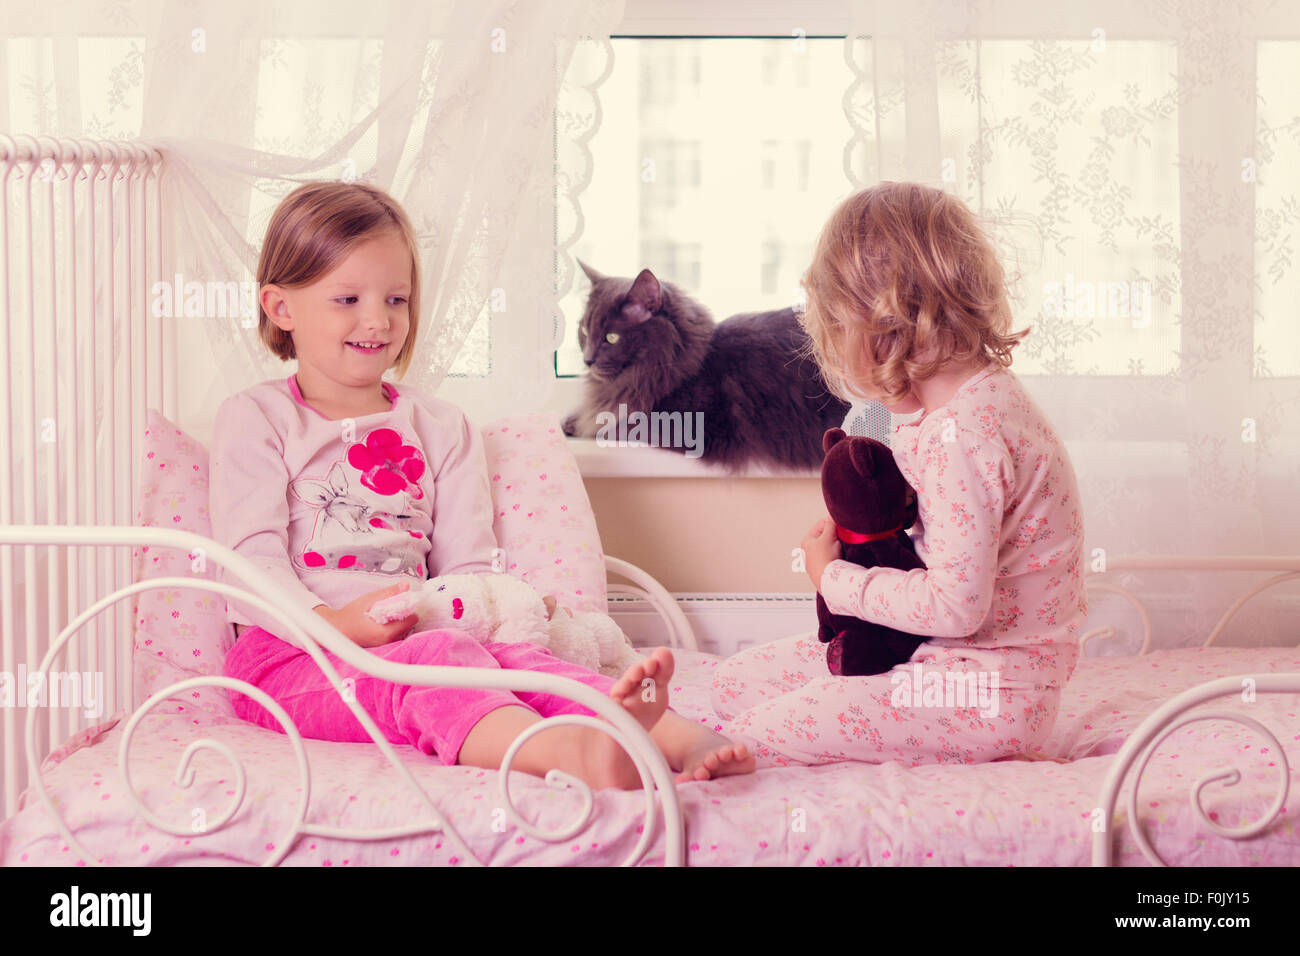 little girl sleeping teddy bear stockfotos little girl. Black Bedroom Furniture Sets. Home Design Ideas